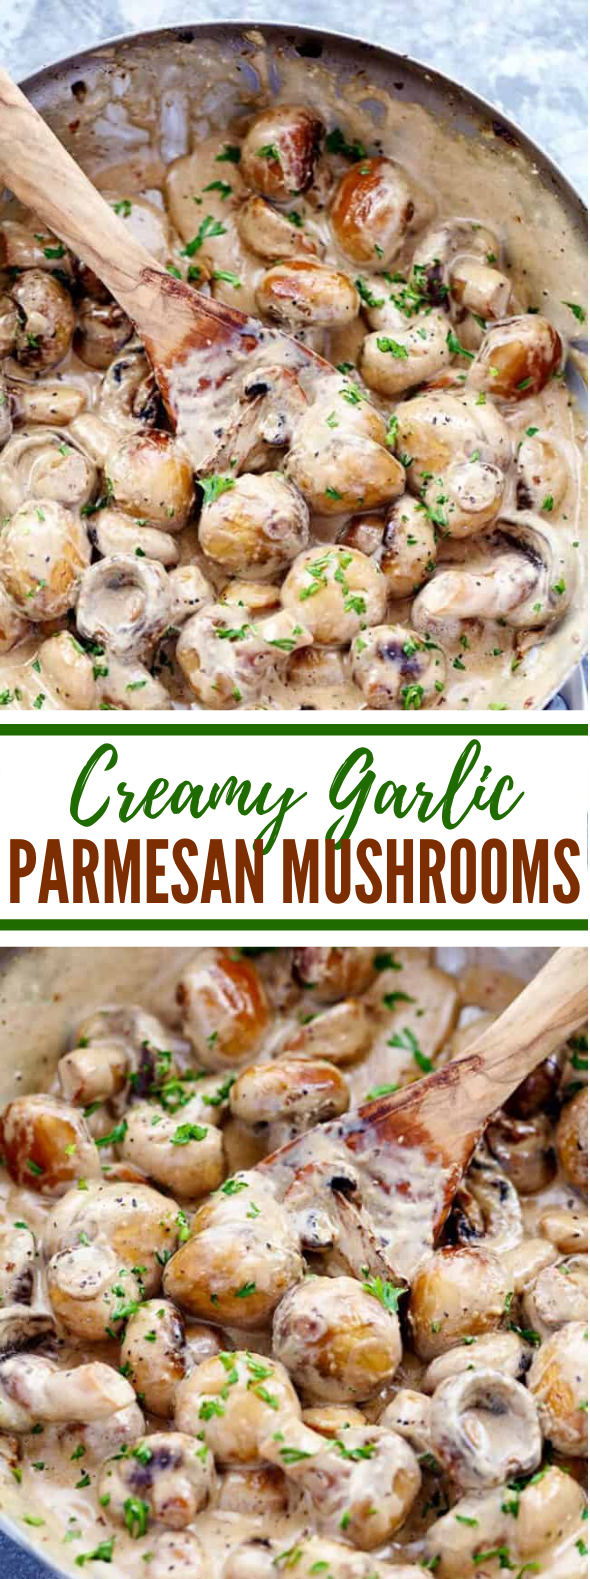 CREAMY GARLIC PARMESAN MUSHROOMS #lunch #dinner